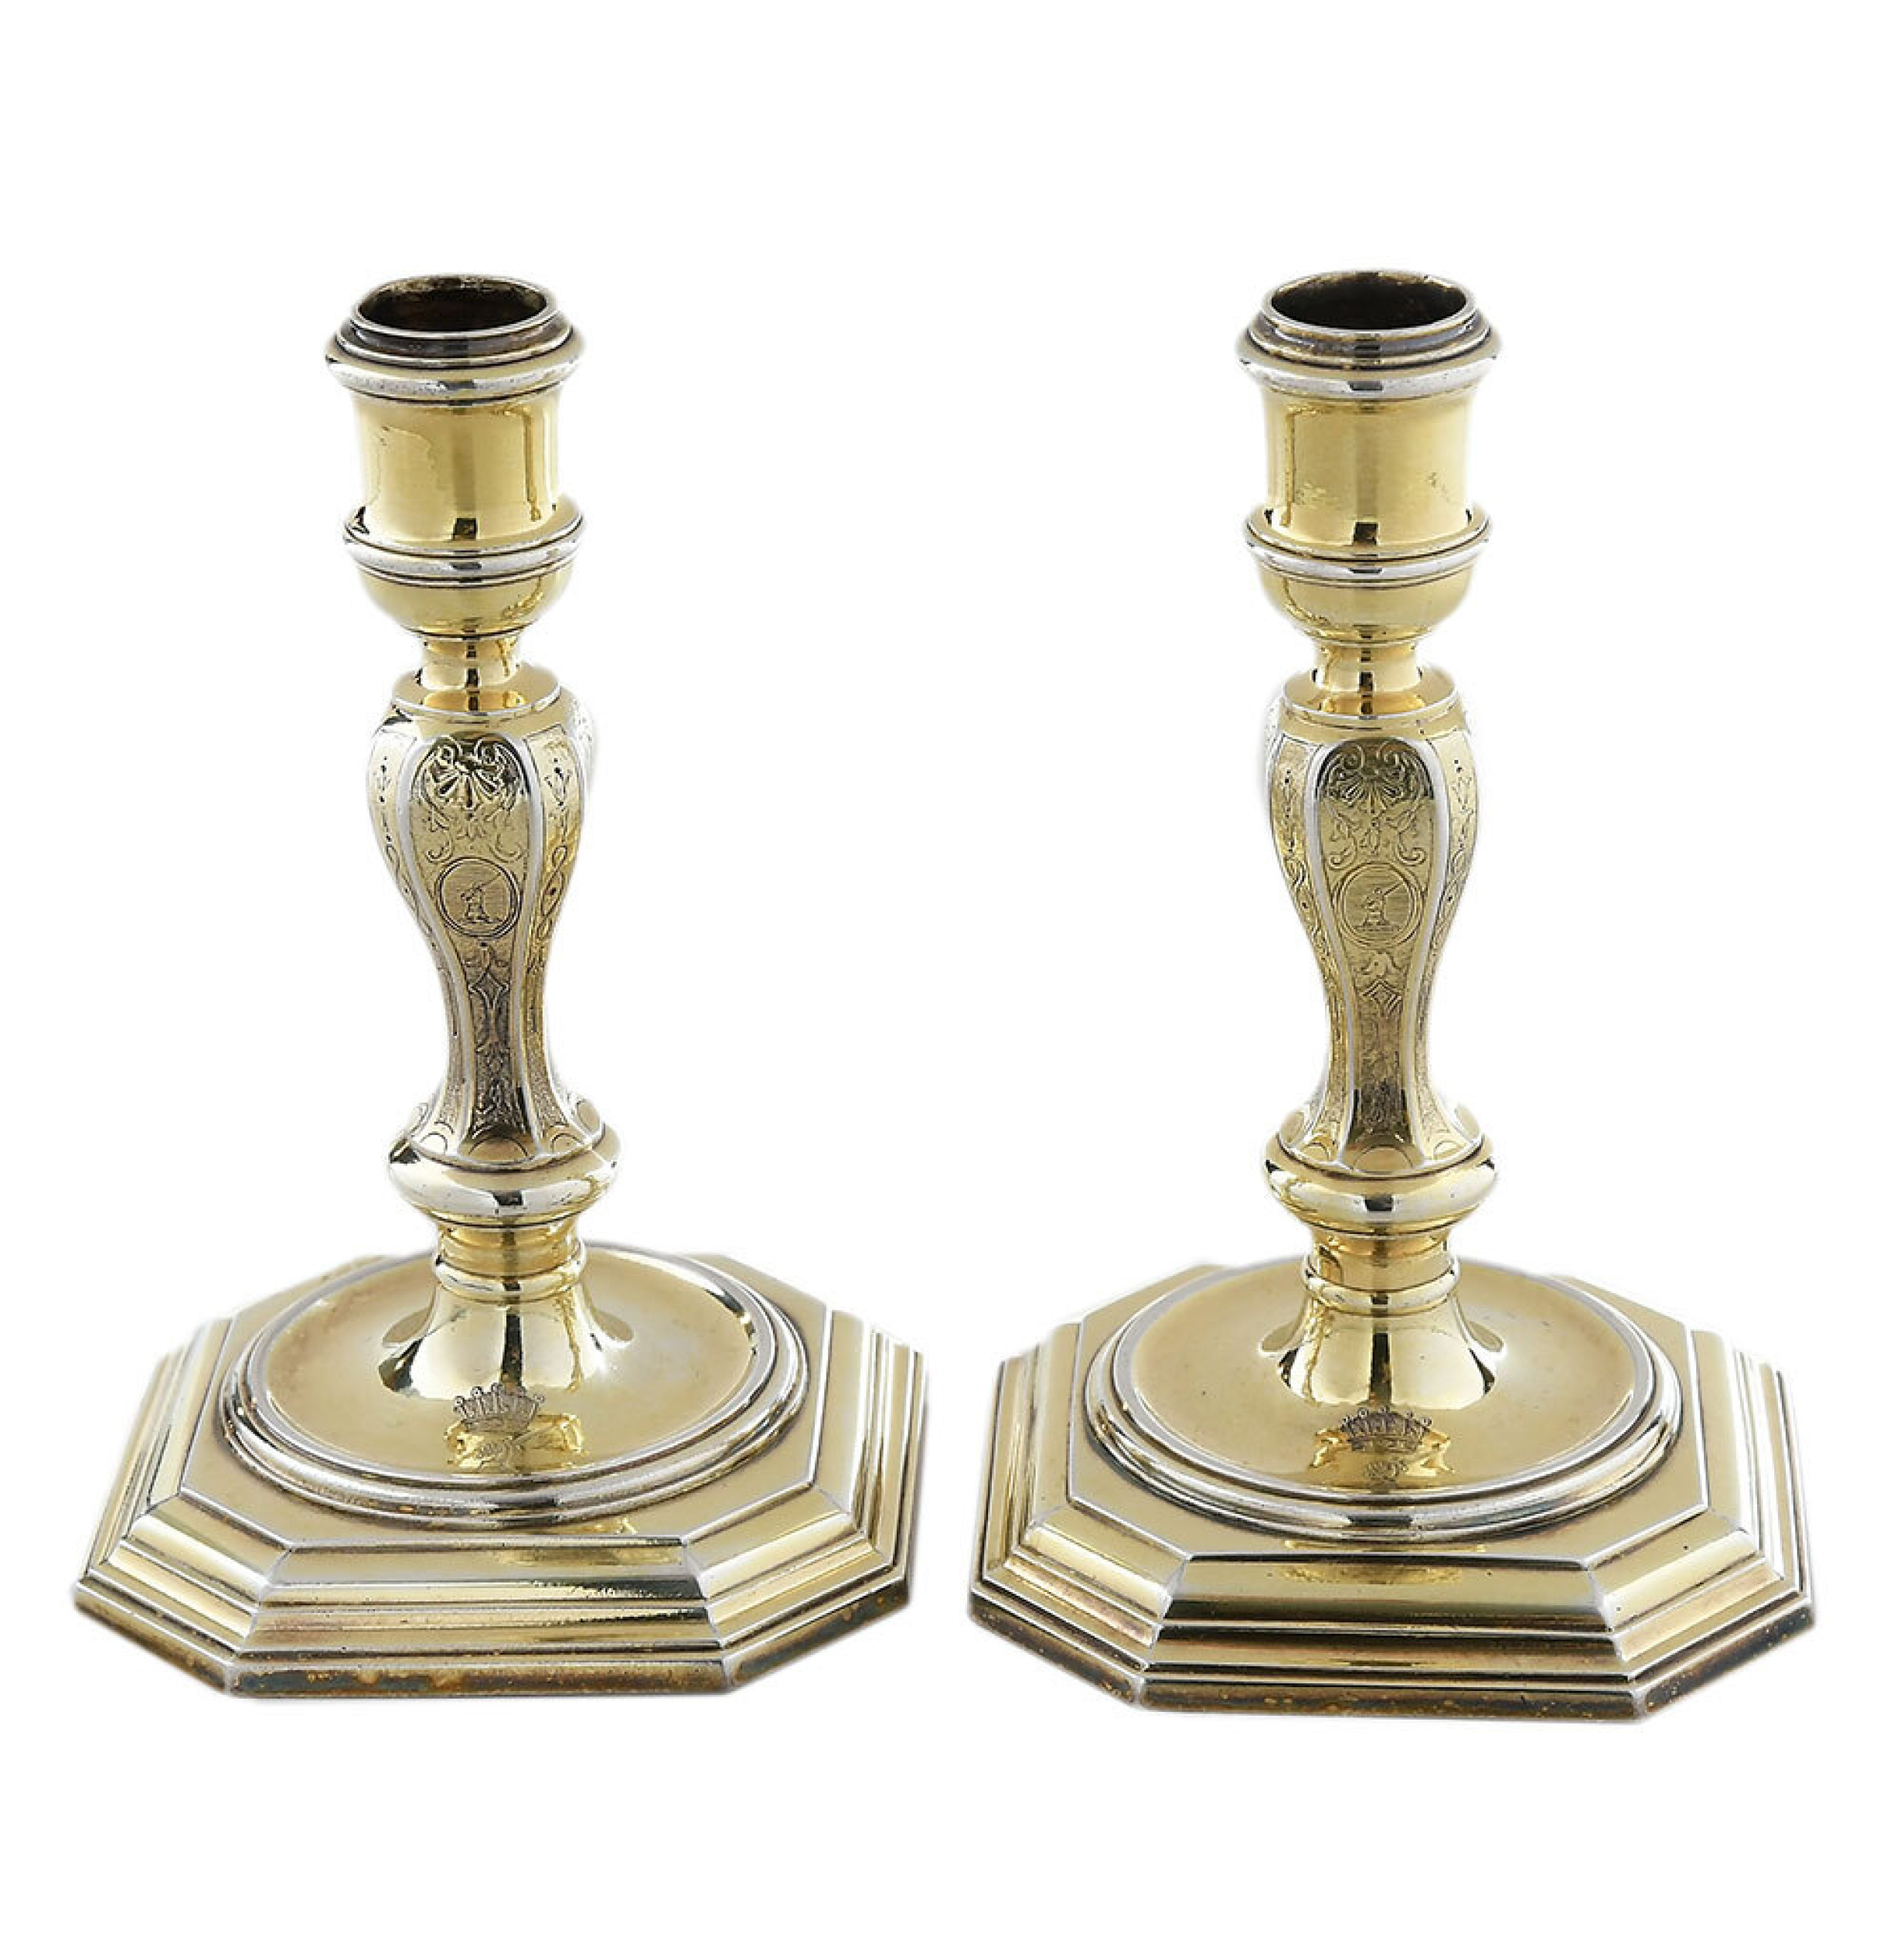 SOLD: $20,910 Pair of George I English Silver Candlesticks